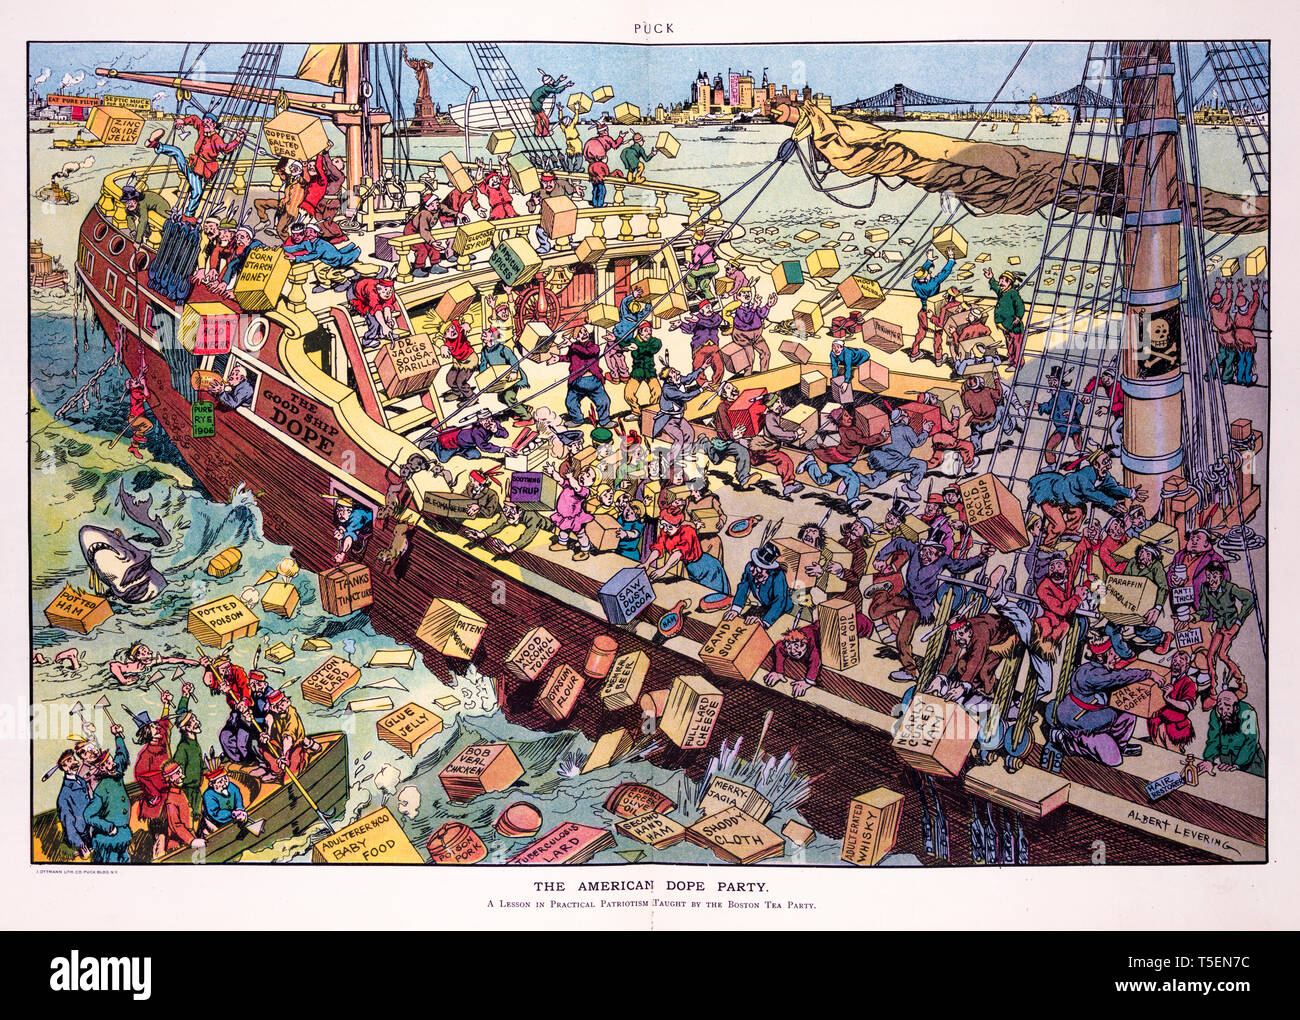 The American dope party, Puck Magazine's cartoon of the Boston Tea Party by Albert Levering, print, 1906 Stock Photo